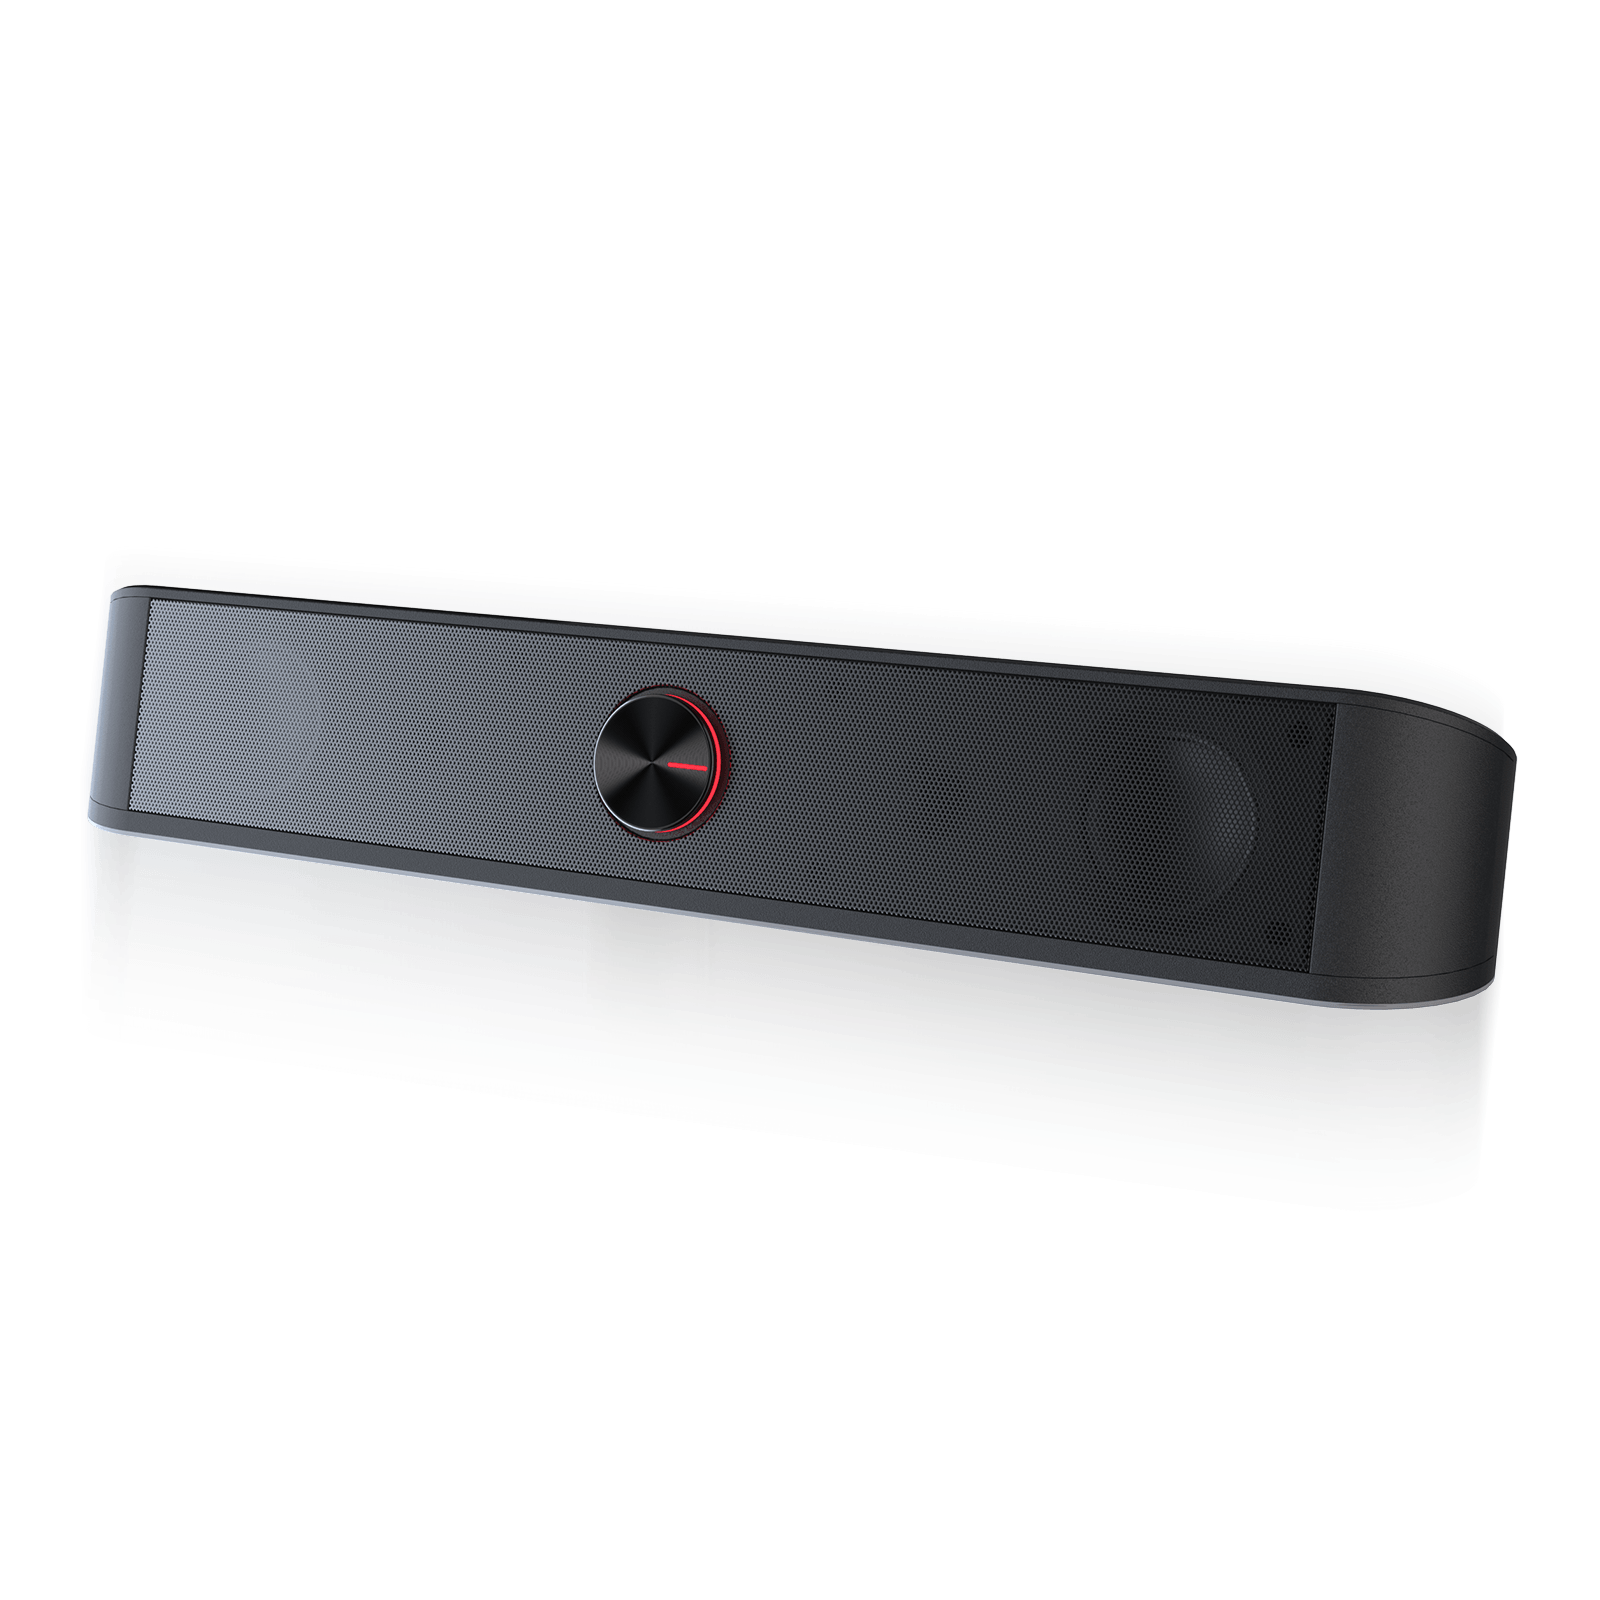 redragon gs560 soundbar